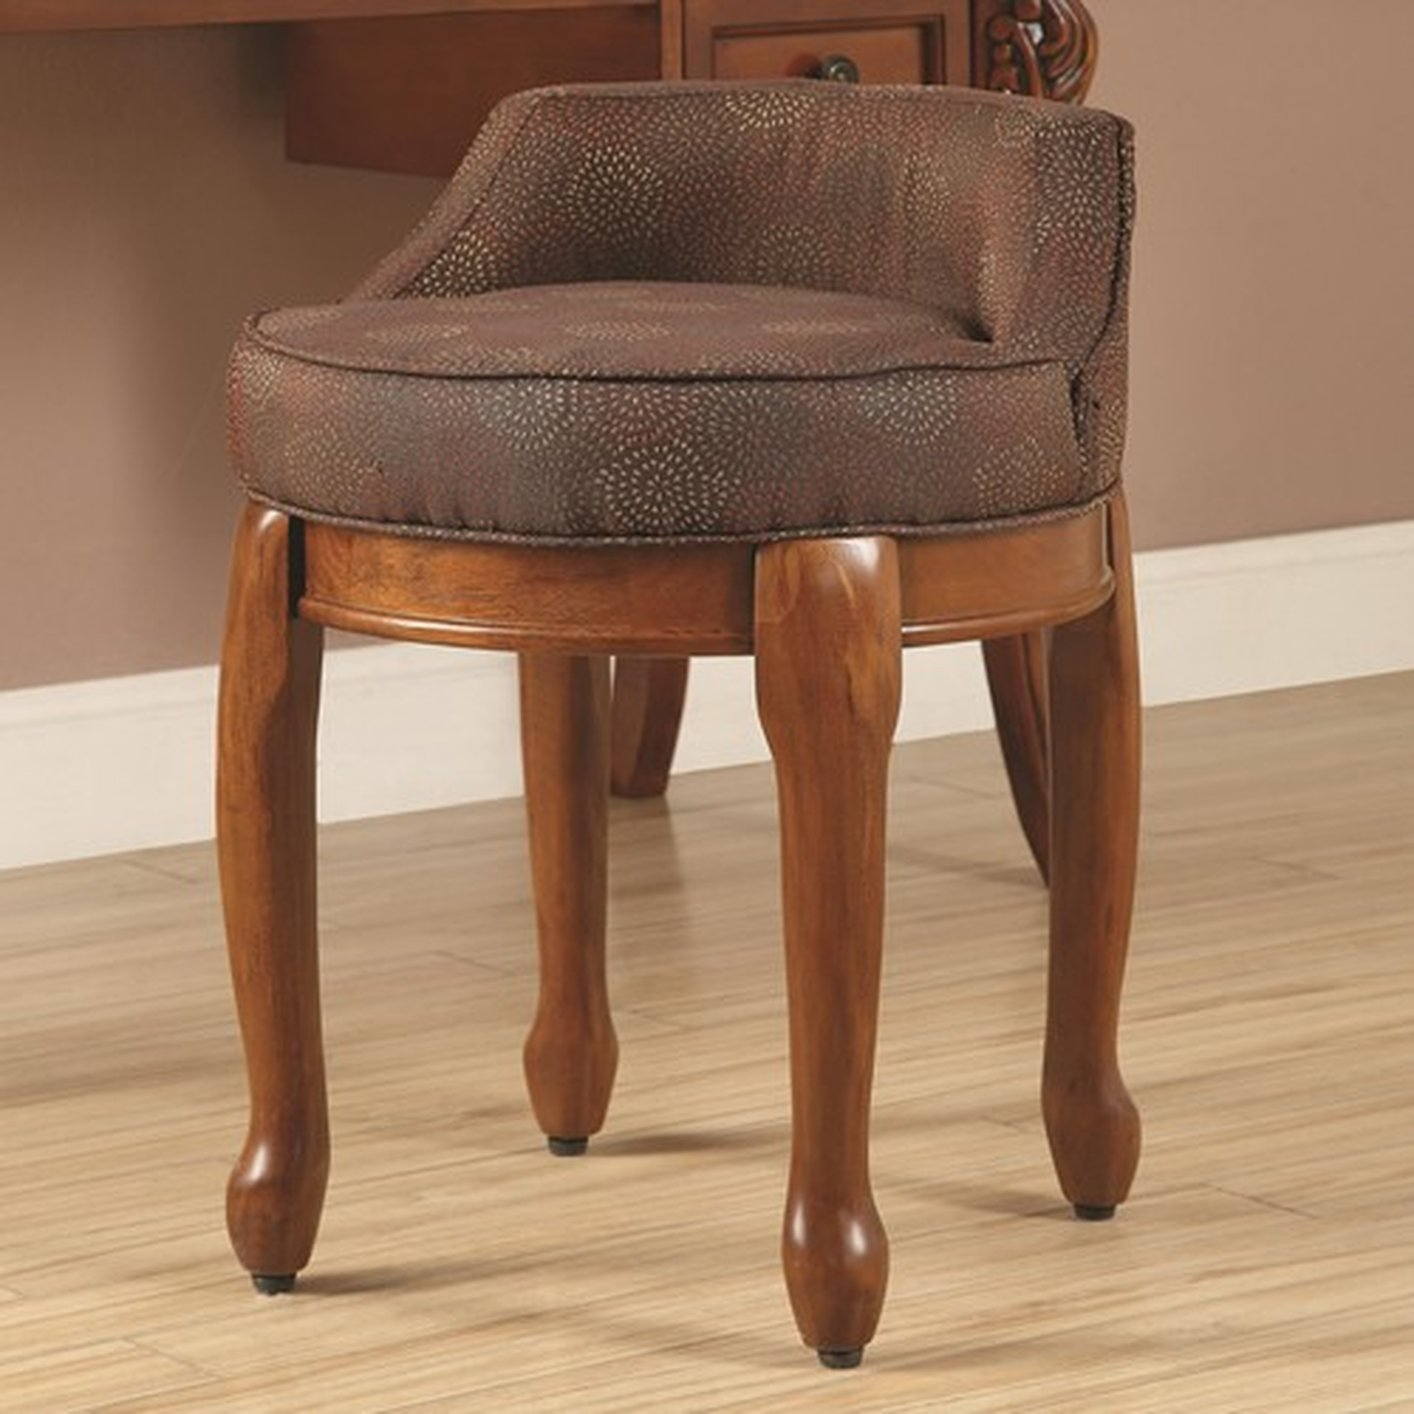 vanity chair or stool. Brown Fabric Vanity Stool  Steal A Sofa Furniture Outlet Los